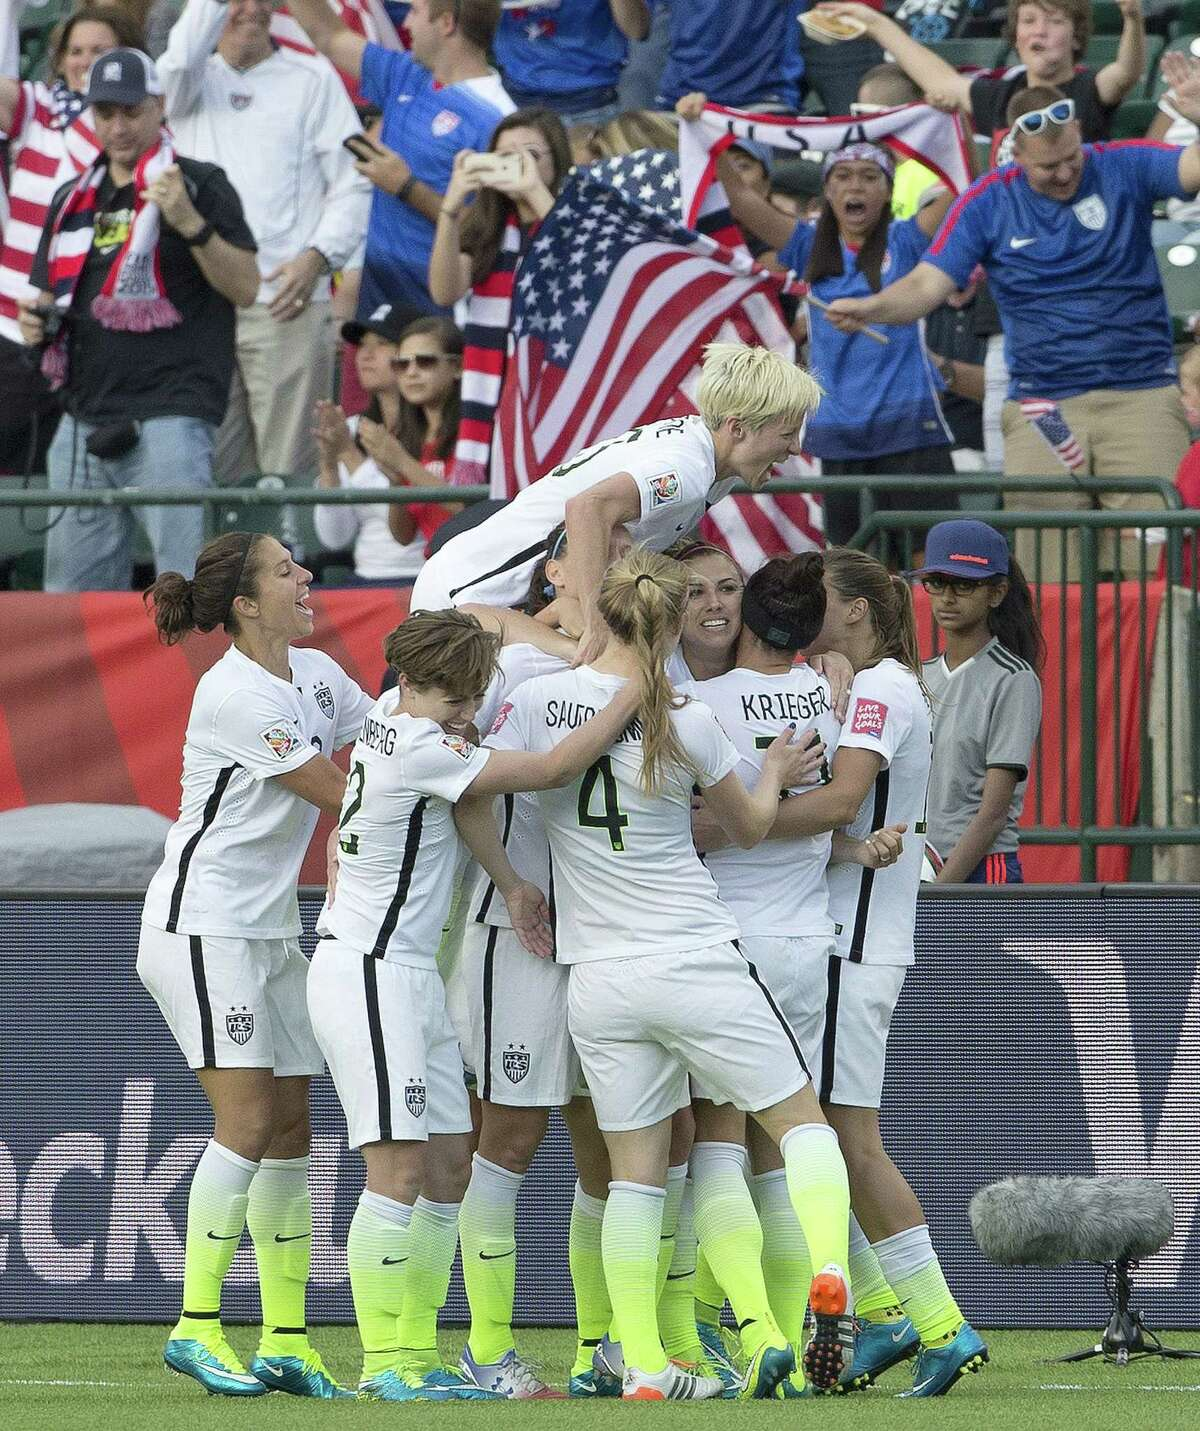 Members of the United States women's soccer team celebrate a goal against Colombia during second half on Monday.